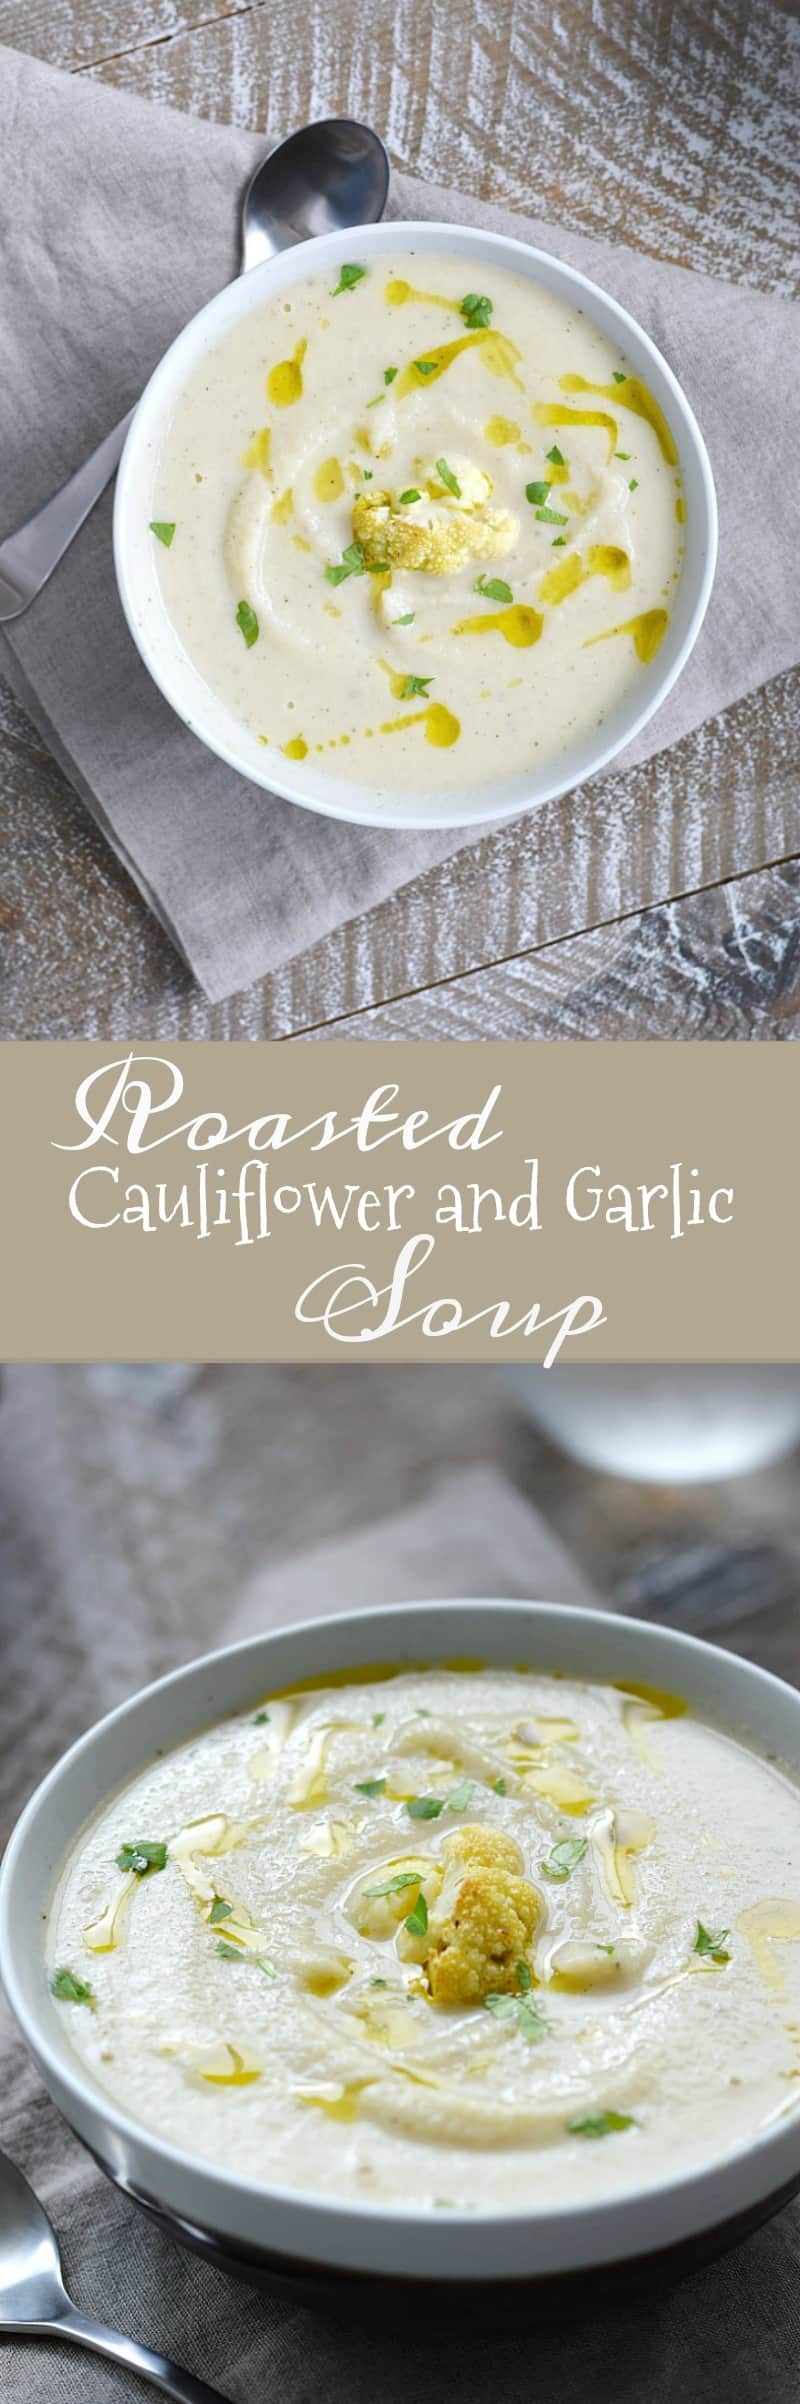 This delicious Roasted Cauliflower and Garlic Soup is dairy-free, Whole 30 and Paleo compliant and vegan   cookingwithcurls.com